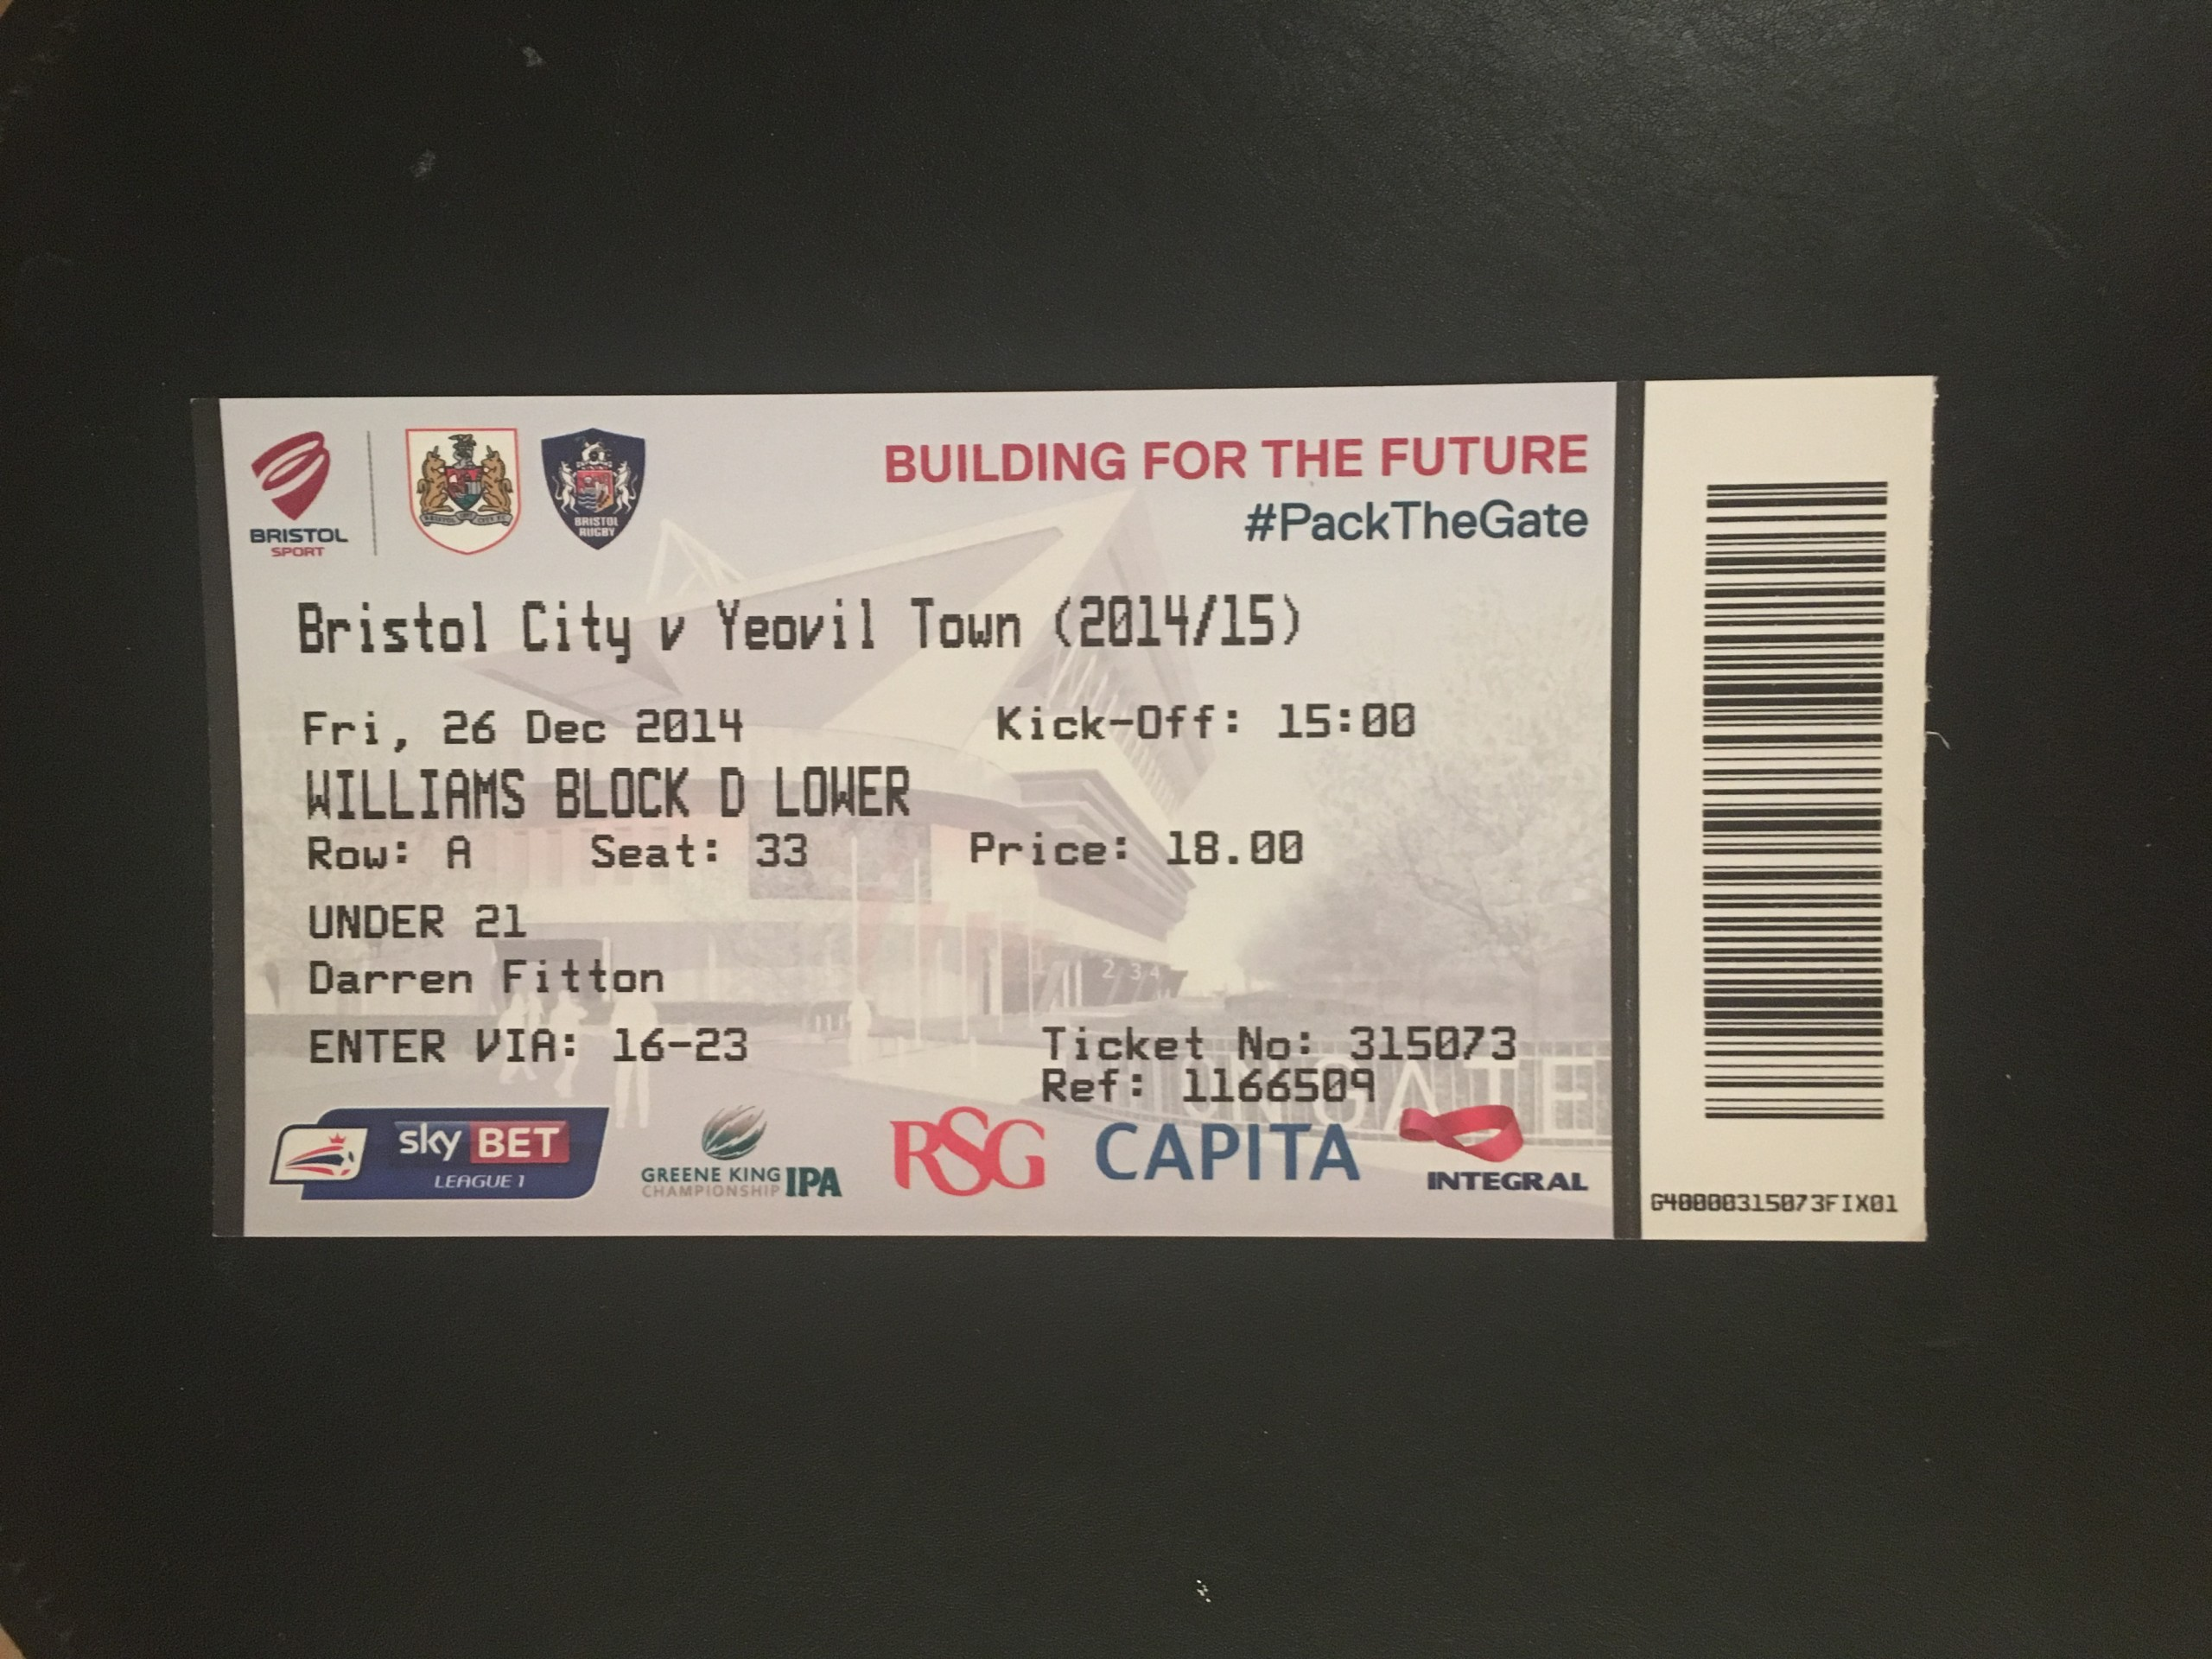 Bristol City v Yeovil Town 26-12-2014 Ticket